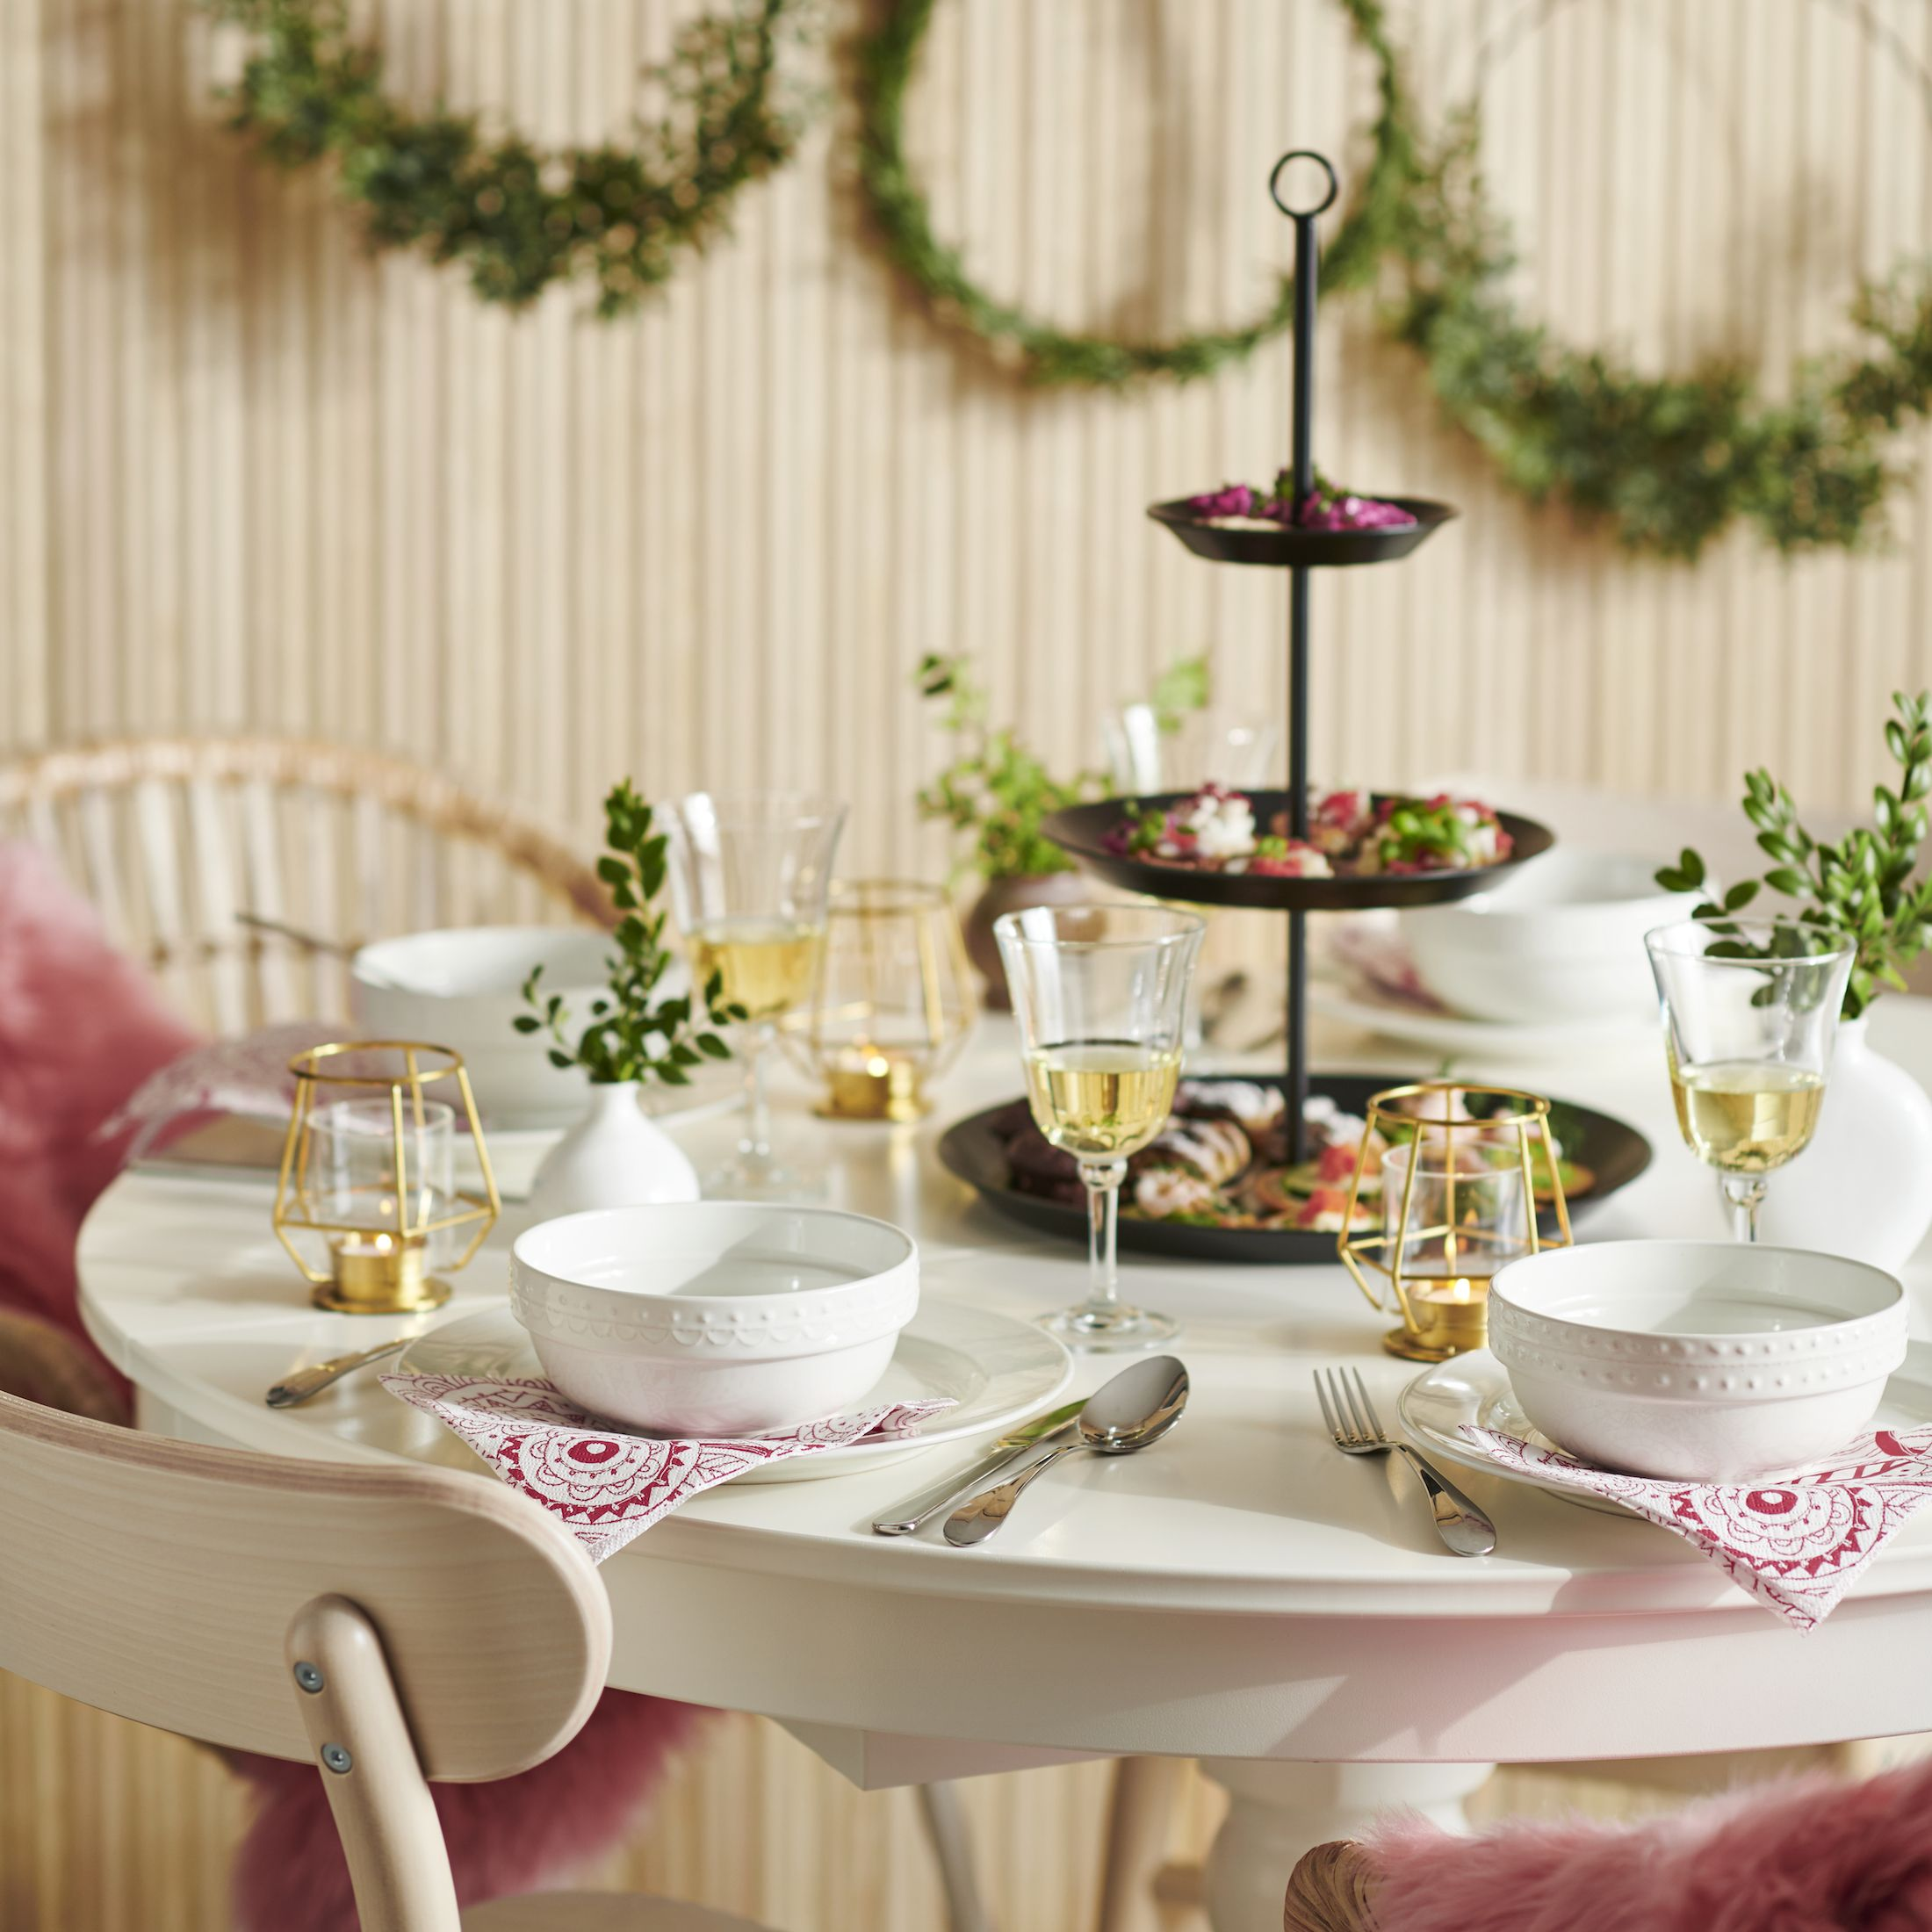 Ikea's VINTER collection is inspired by modern ways of celebrating the festive season